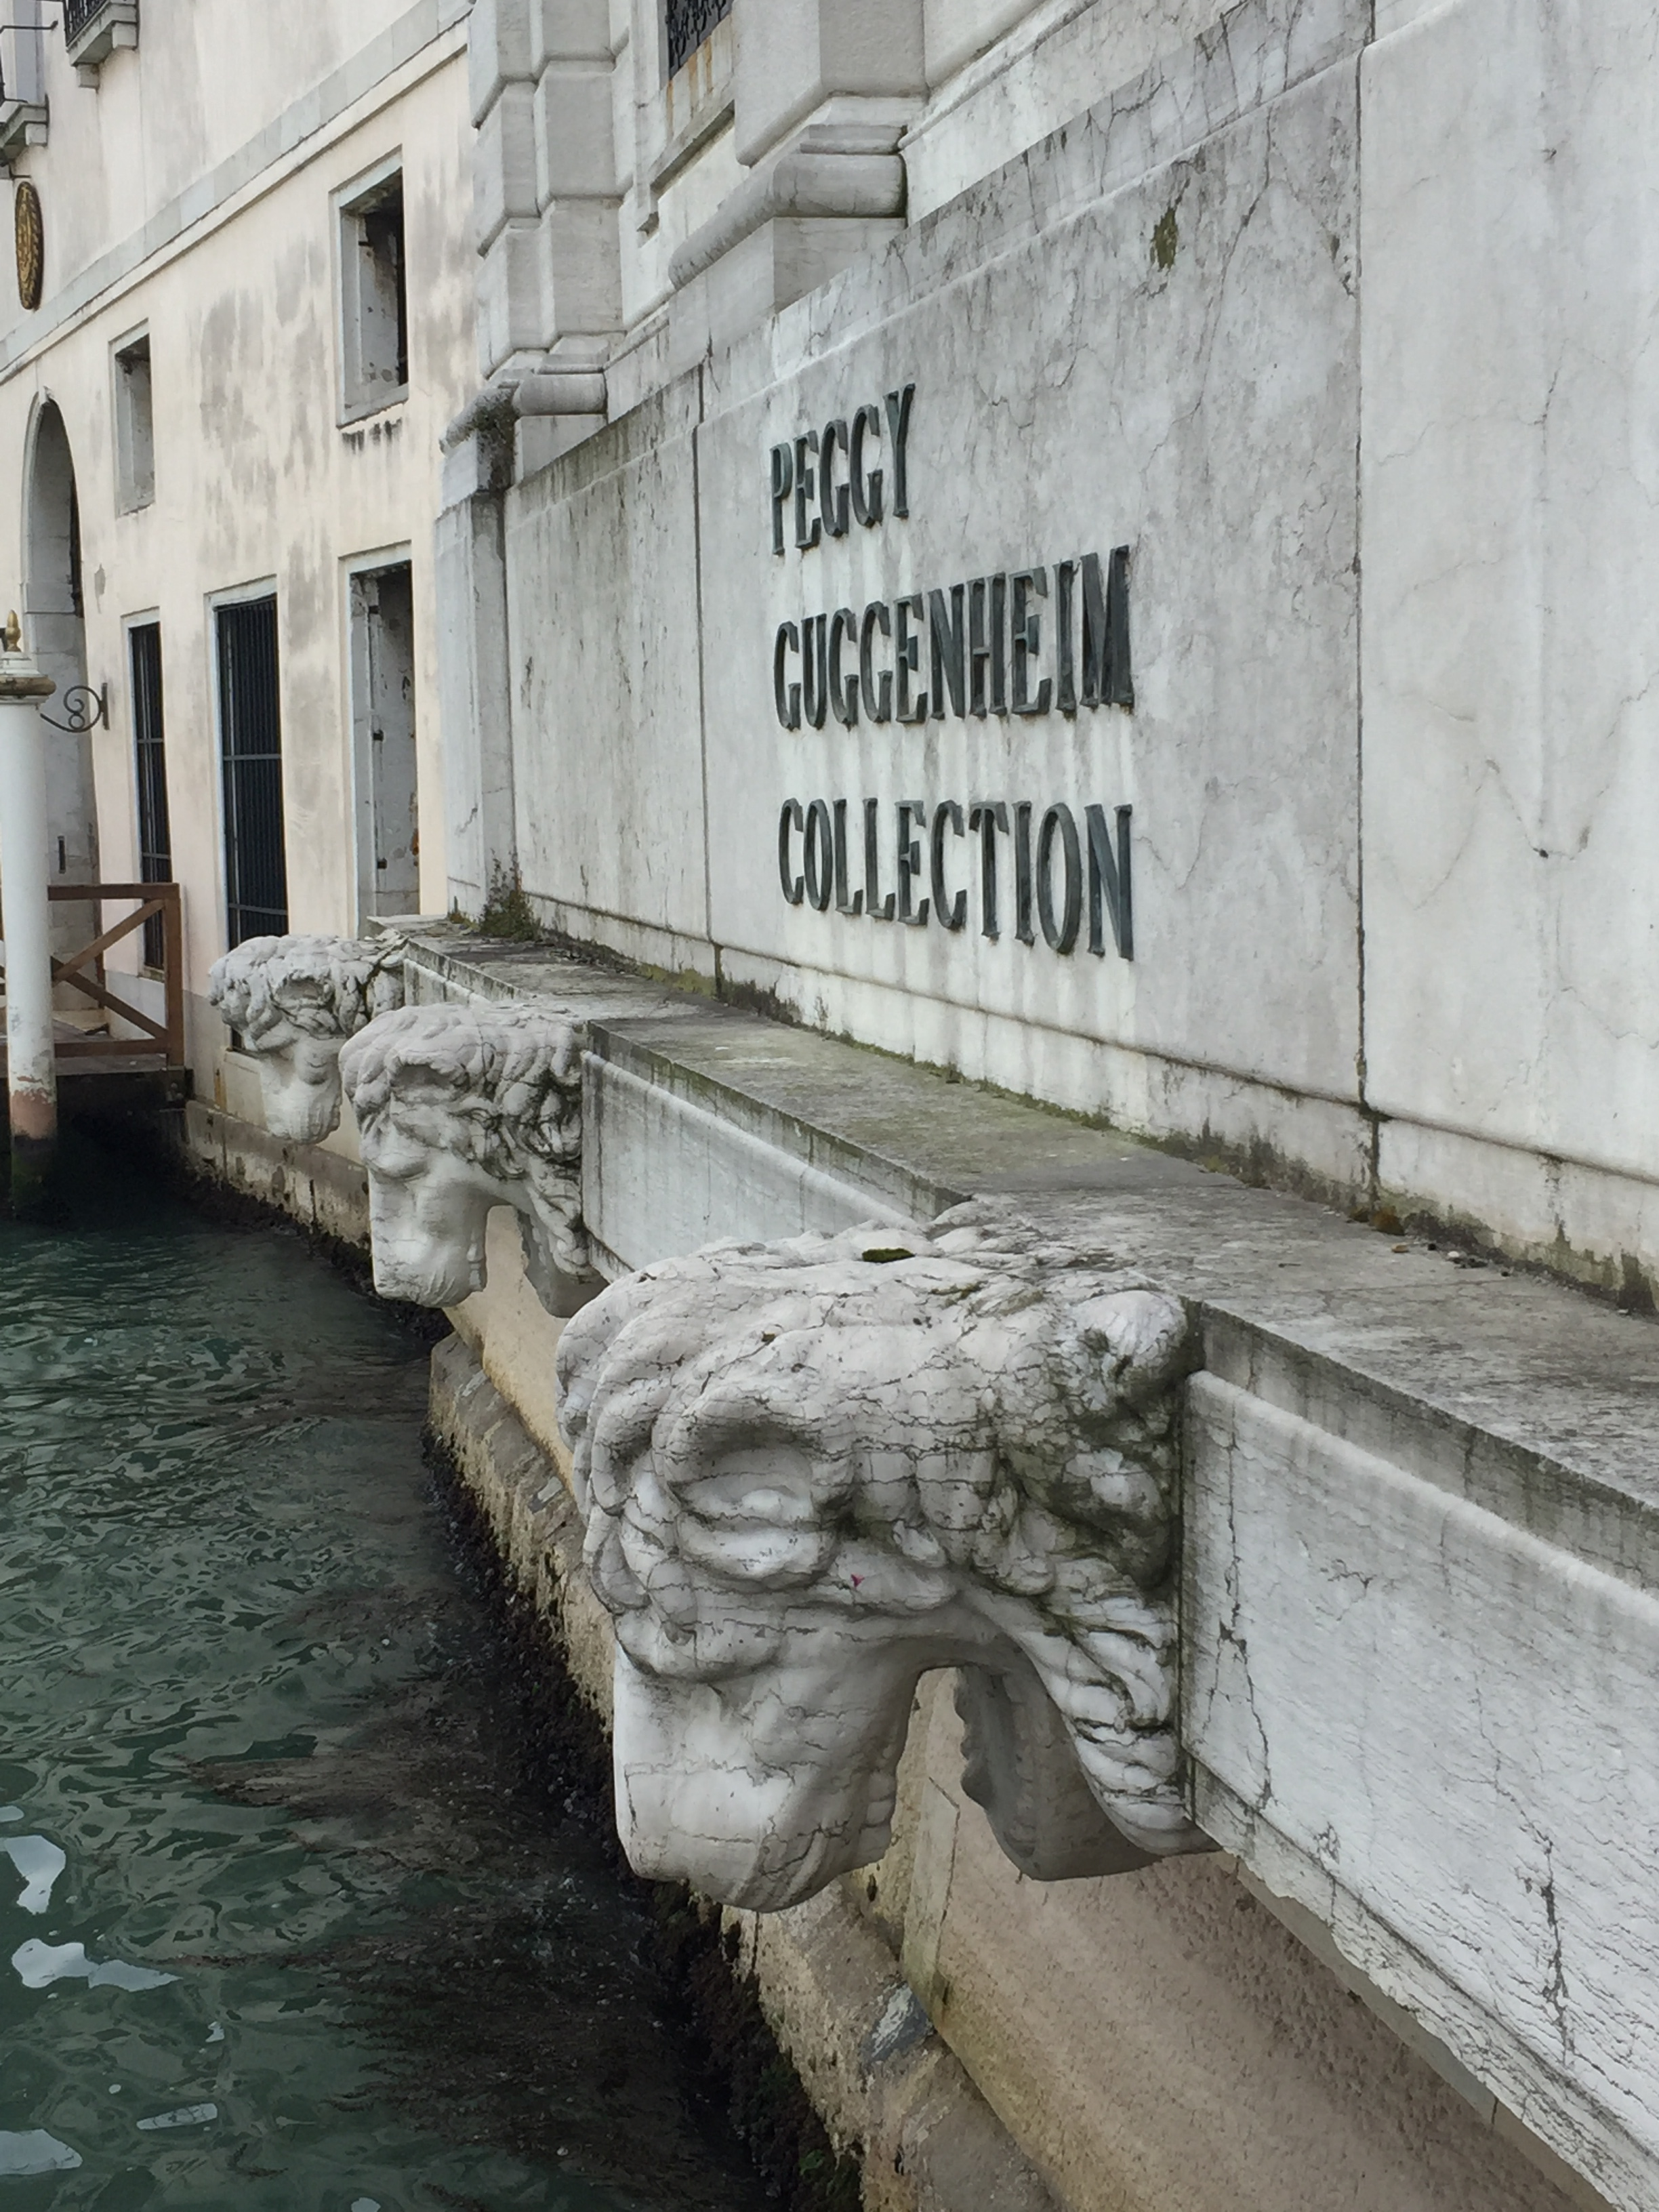 The Peggy Guggenheim collection in Venice